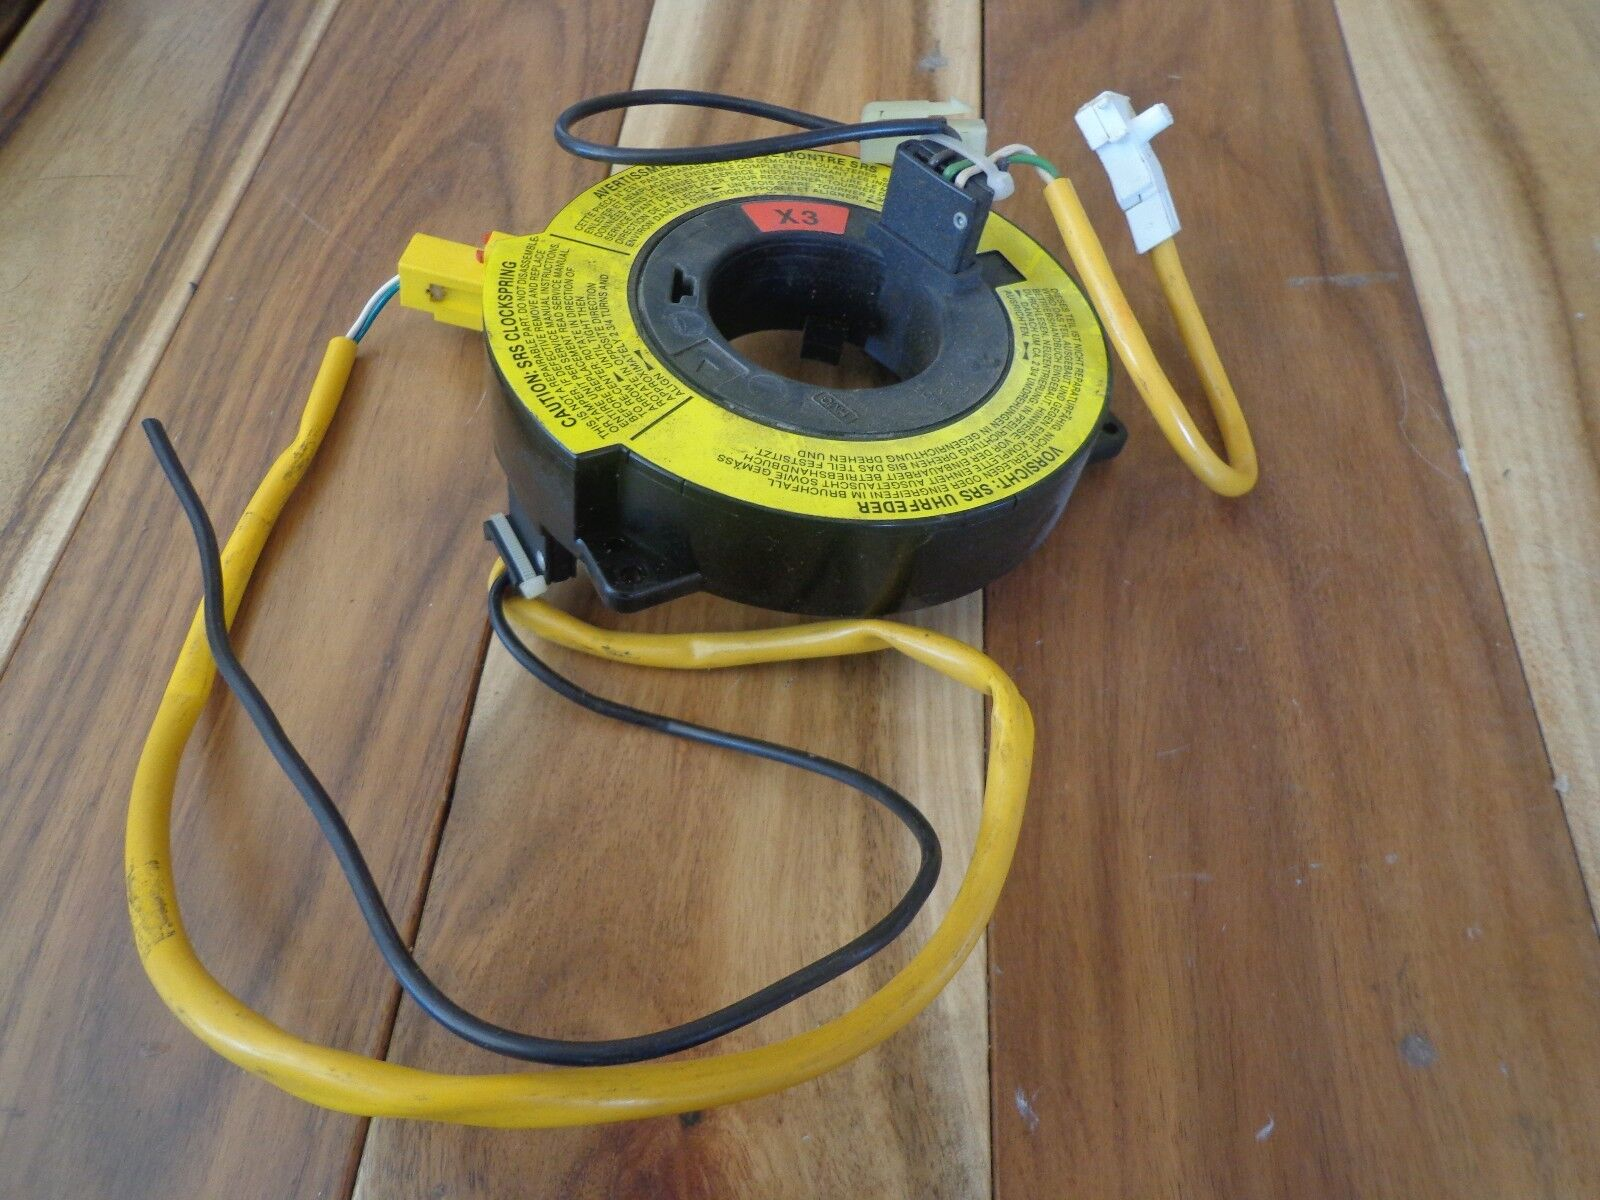 Used Hyundai Switches And Controls For Sale Page 93 2001 Sonata Wiring Harness Srs 1995 1999 Accent Clock Spring